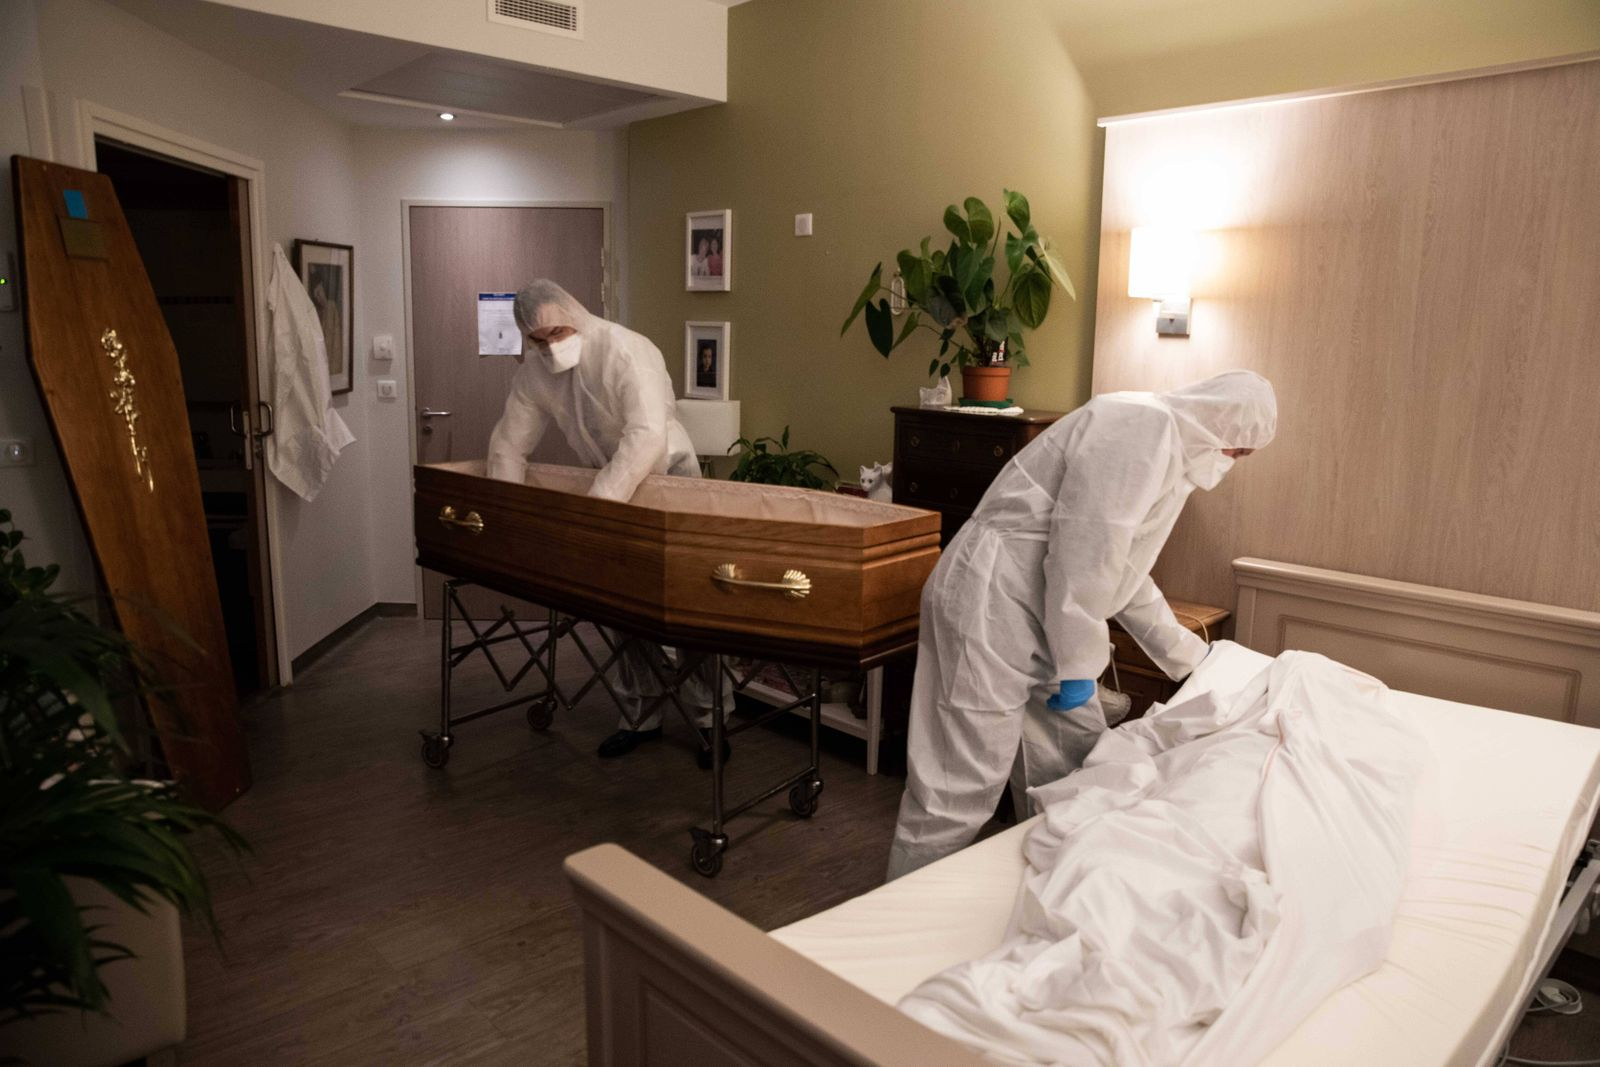 Paris, France, April 7, 2020 - Report inside the Santilly Funeral Home, which is currently facing the Coronavirus epidem